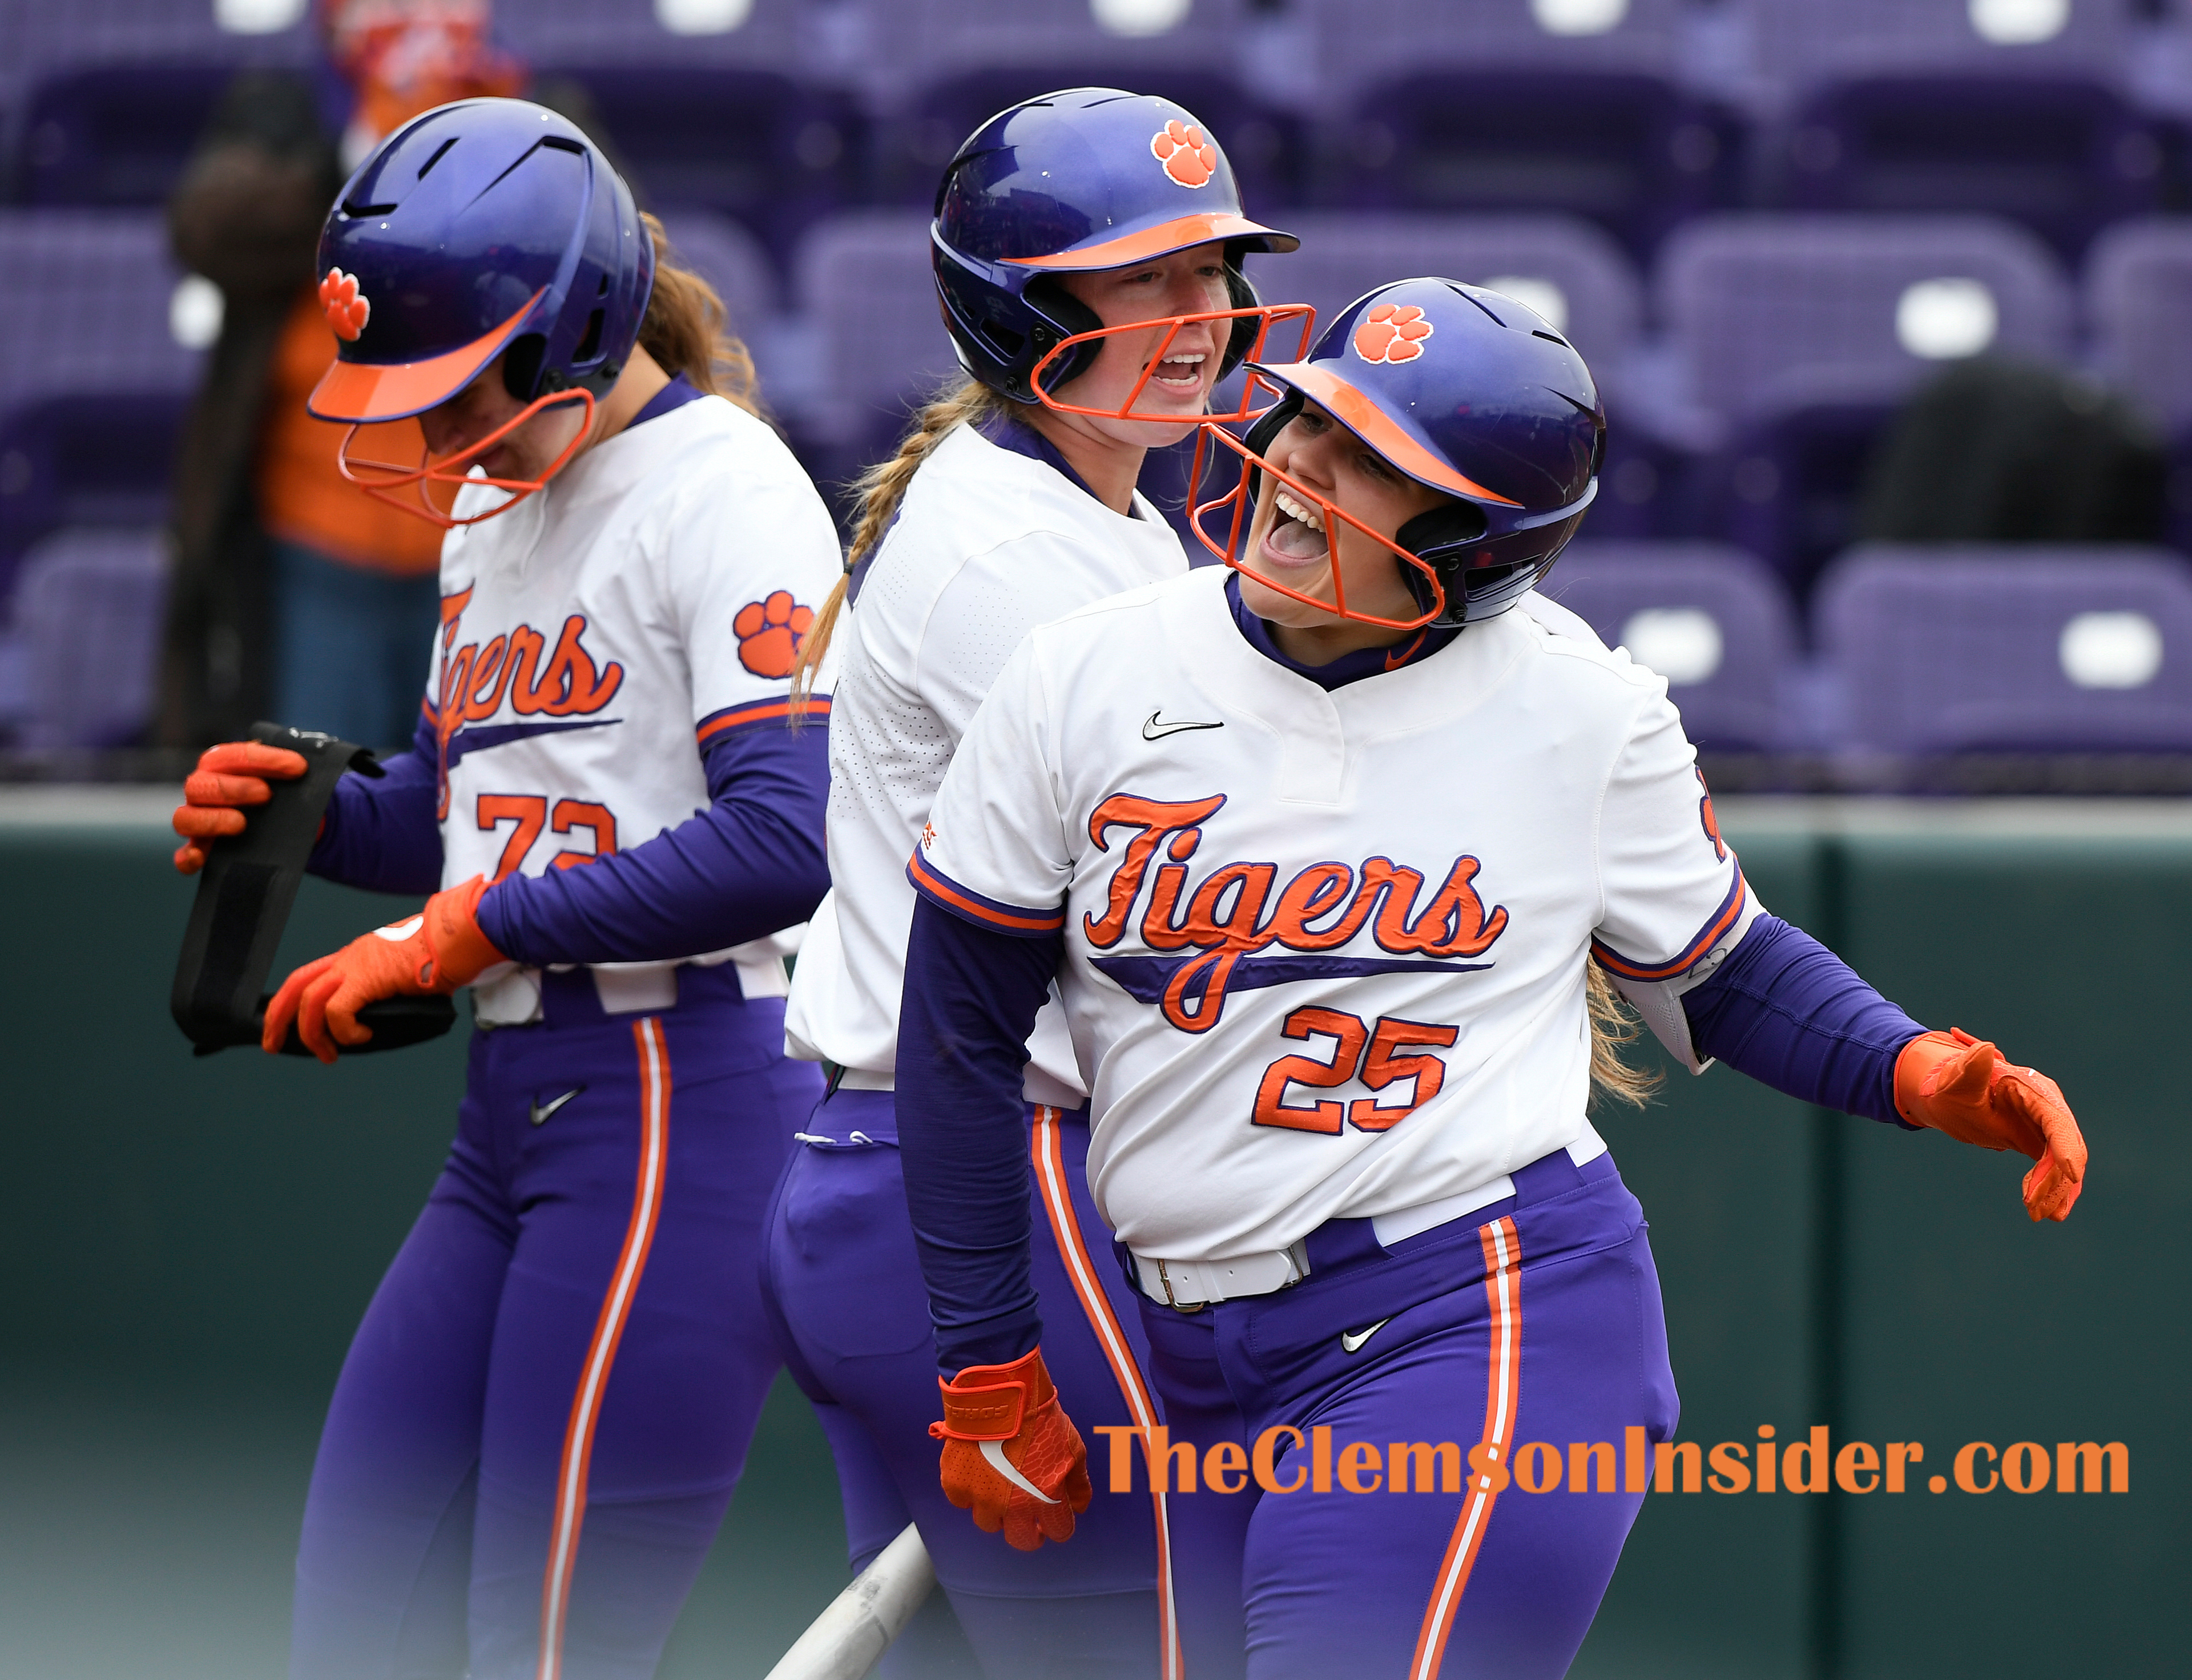 Clemson's Marissa Guimbarda (25) celebrates as she crosses home plate after hitting a two run home run against Virginia Tech during the Tigers home opener Thursday, February 18, 2021 at Clemson's McWhorter Stadium. Bart Boatwright/The Clemson Insider